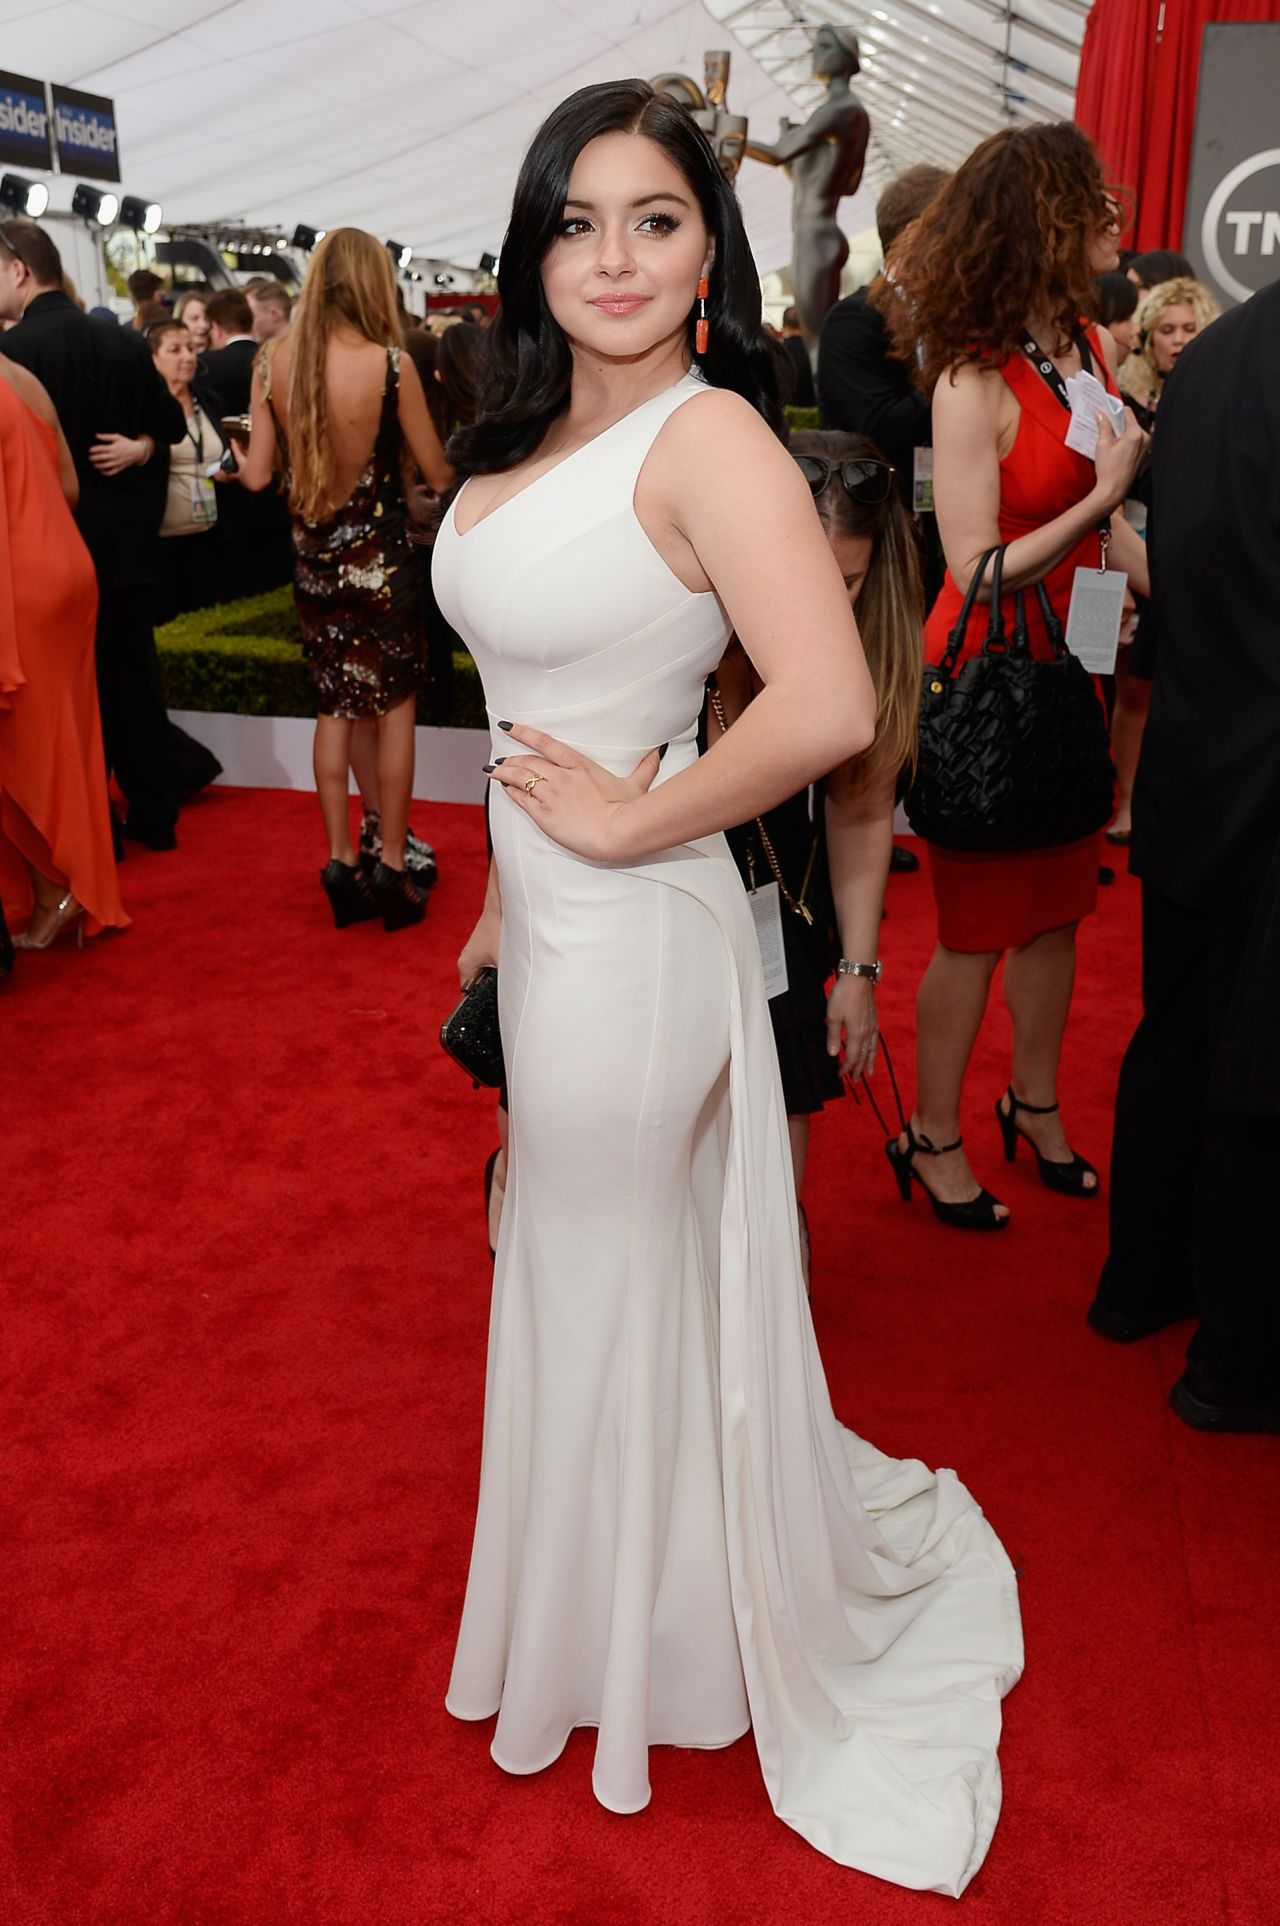 ariel-winter-hot-leaked-photoshoot